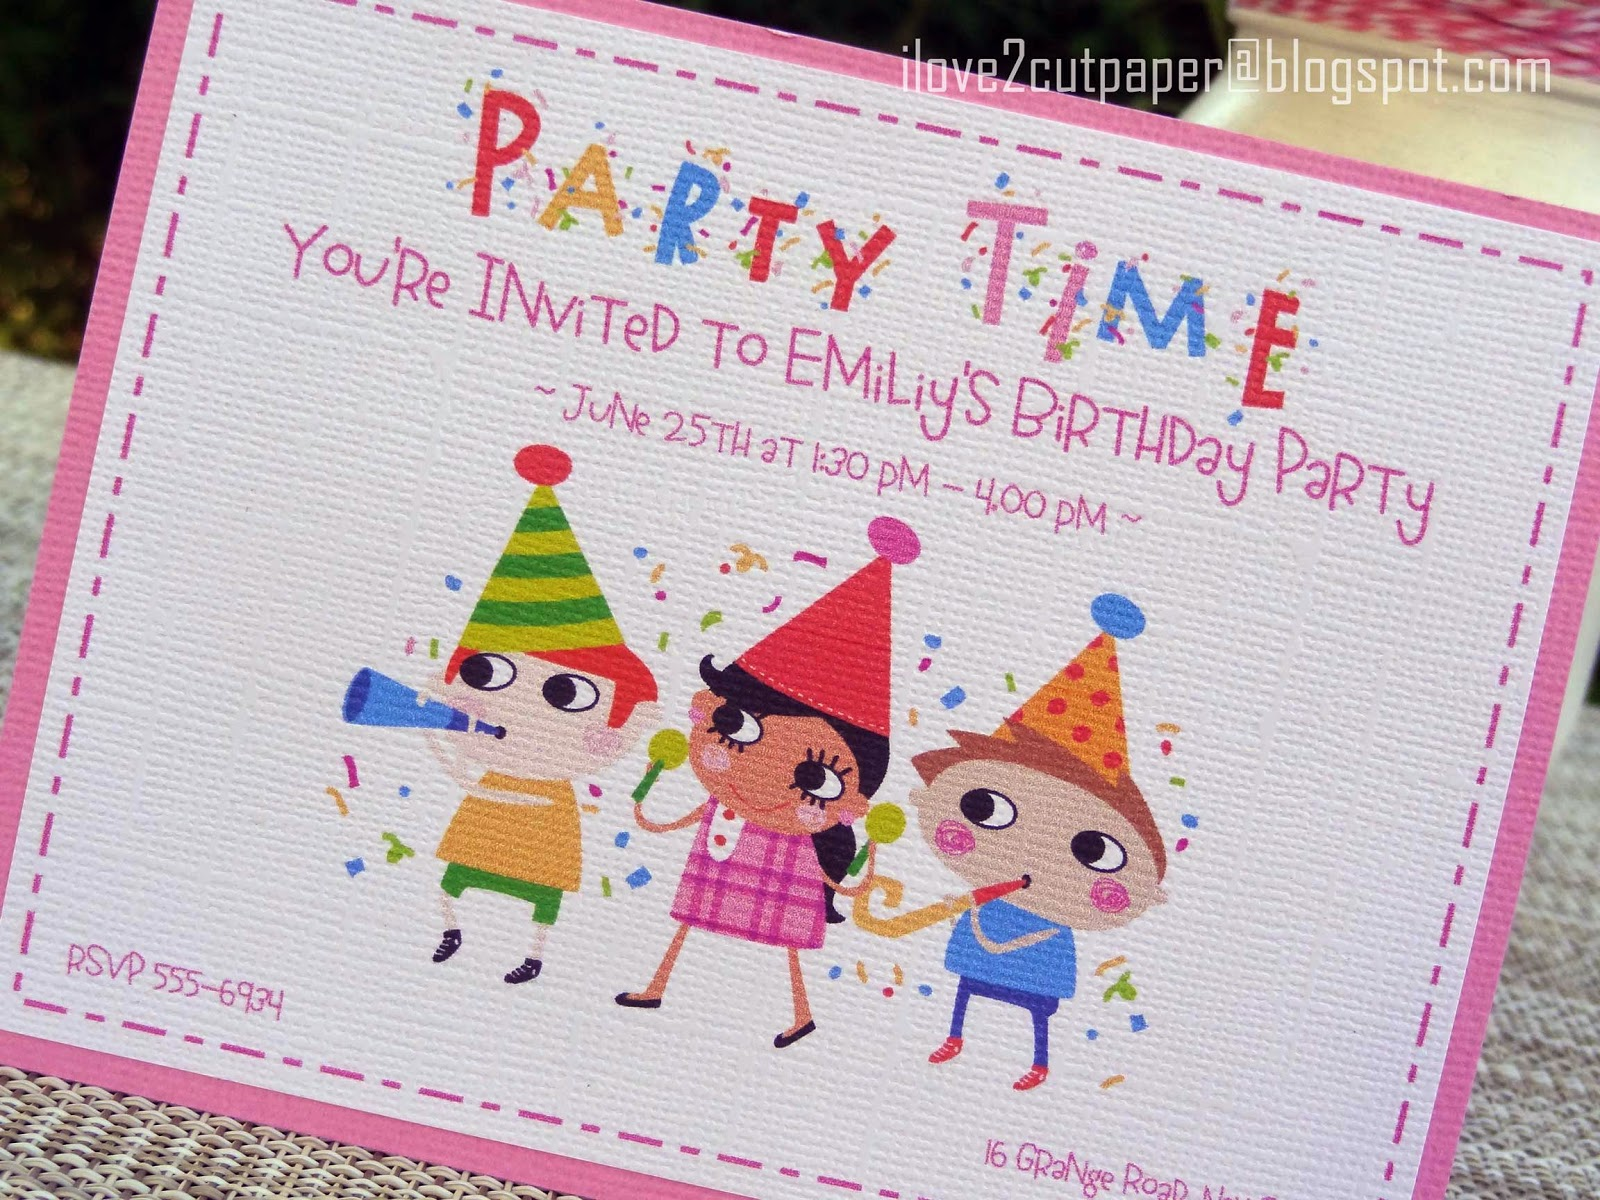 i love 2 cut paper: \'Party Time\' Invitation and Party Bag